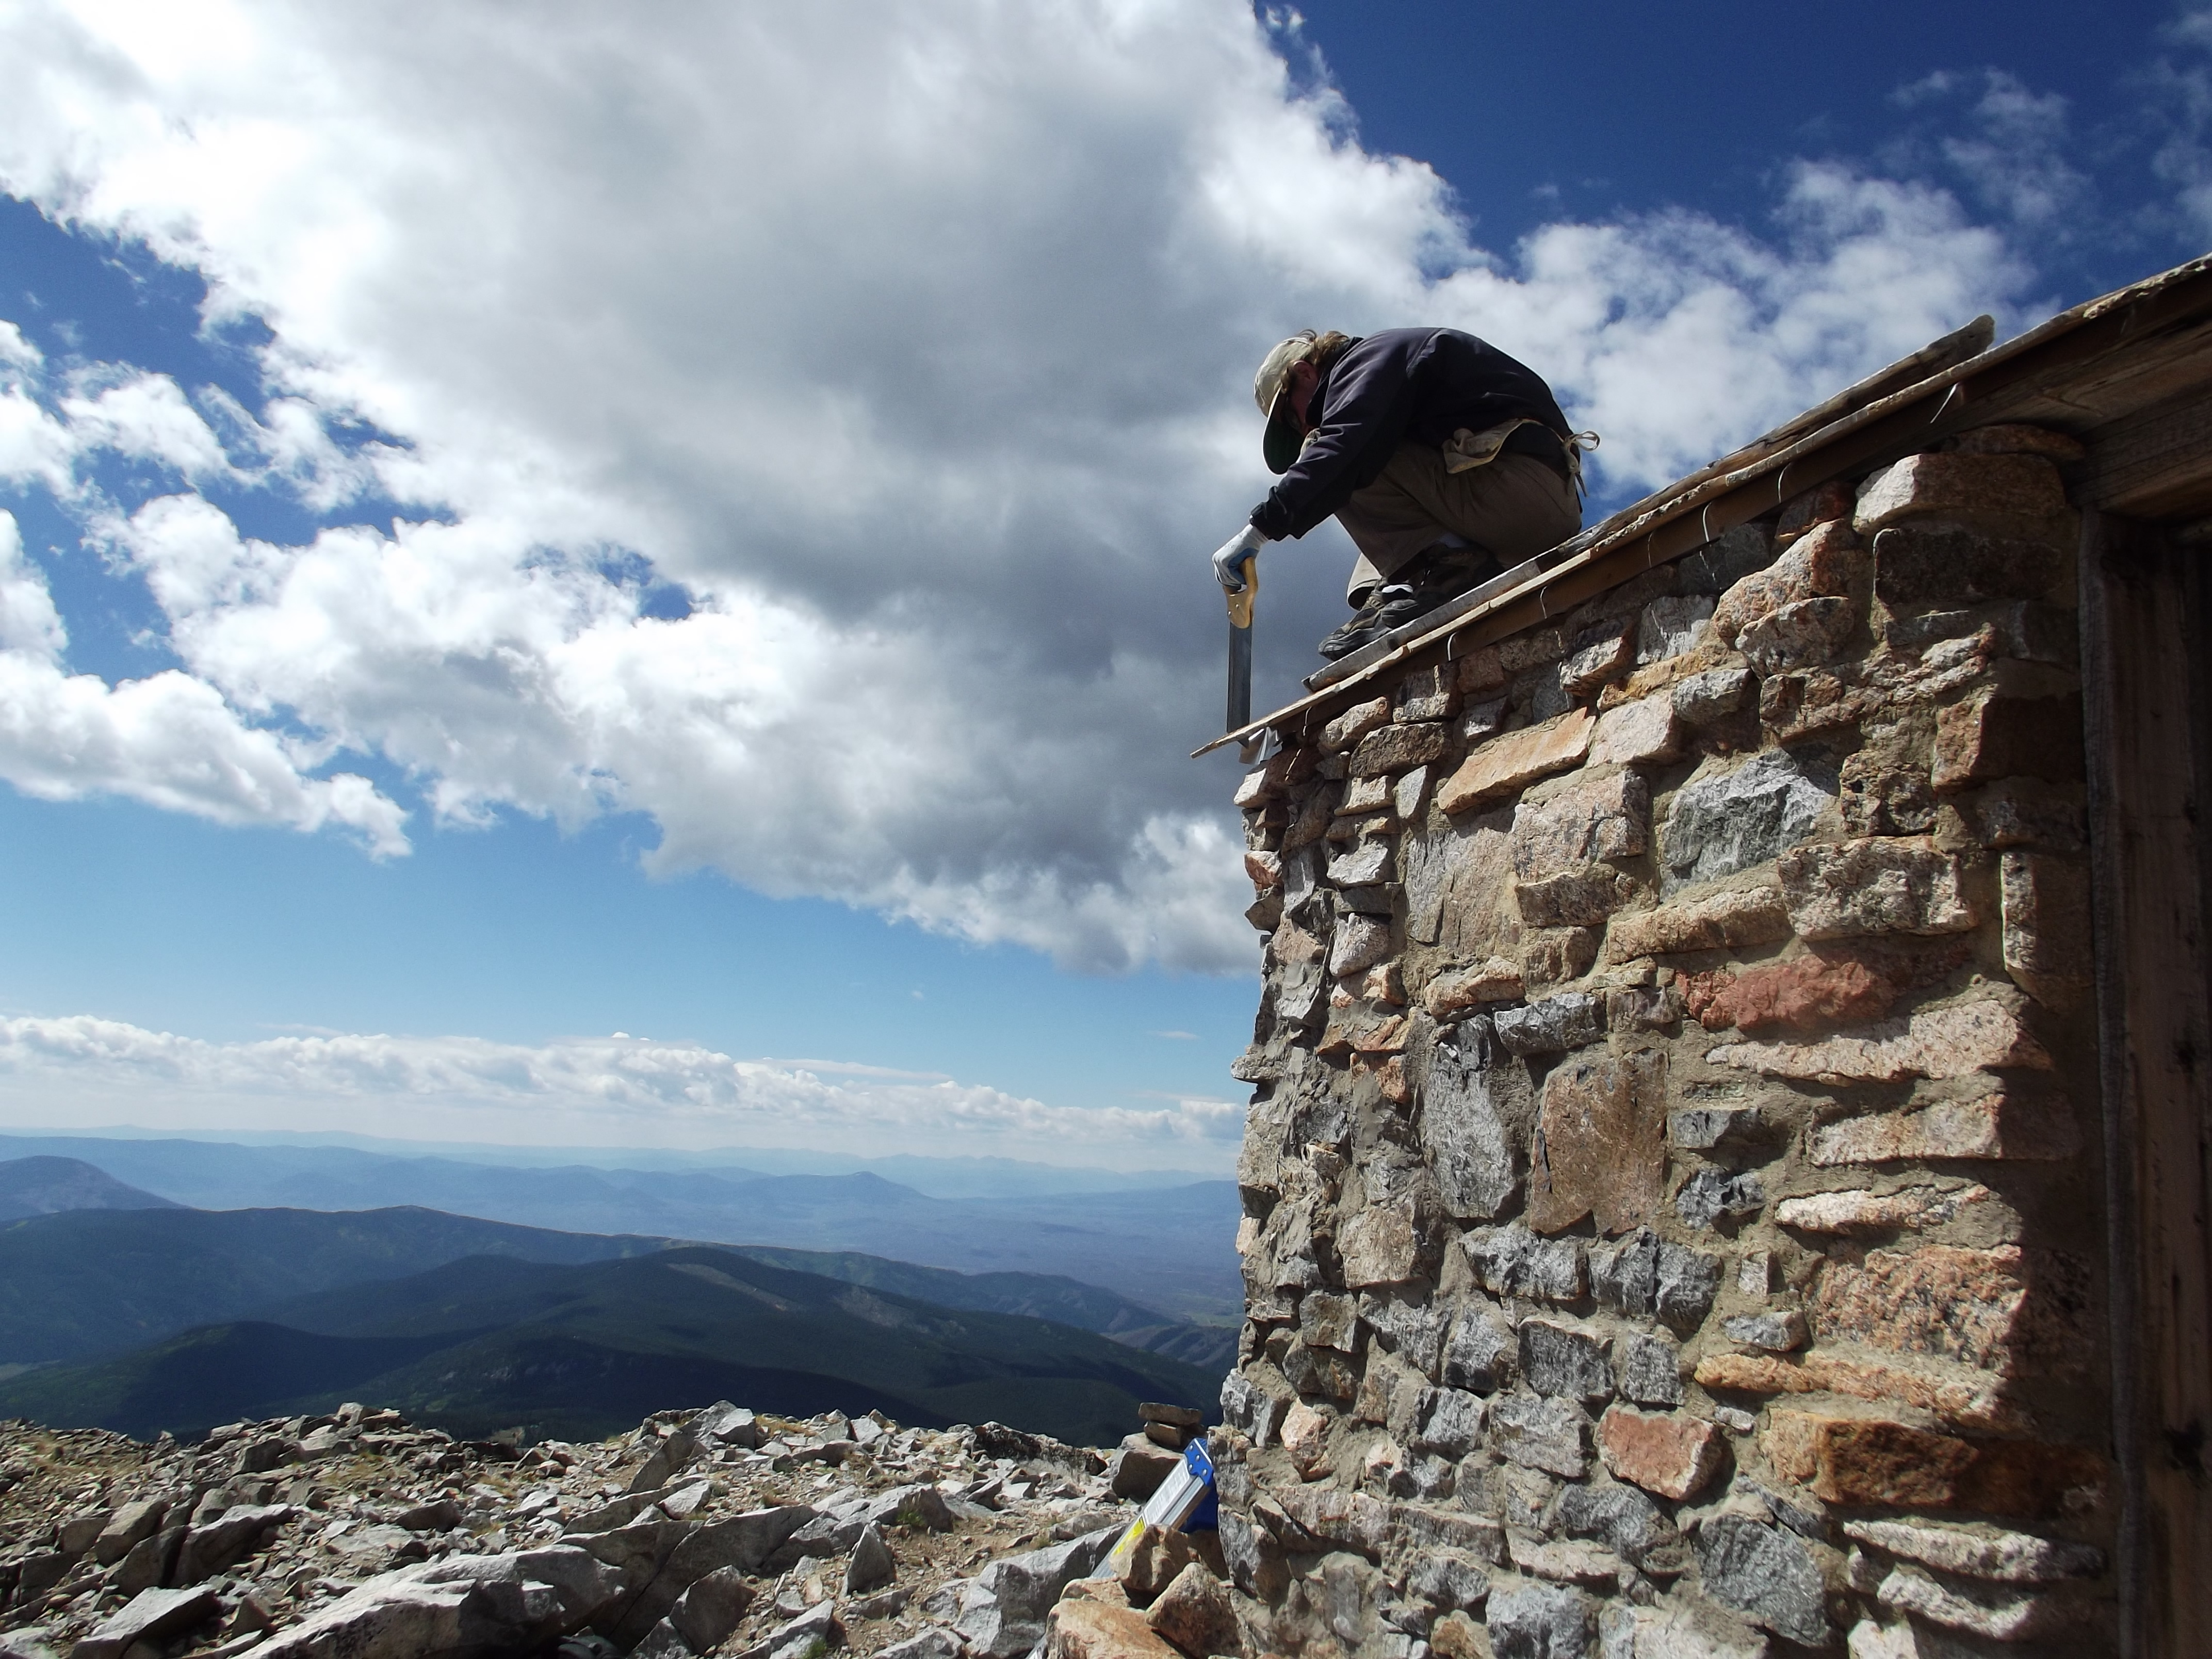 A HistoriCorps volunteer has a spectacular view while working on the Fairview Peak Fire Lookout on the Gunnison National Forest in Utah. The one-room lookout, the highest in North America, was built in 1912. (Photo courtesy Xavier Fane)